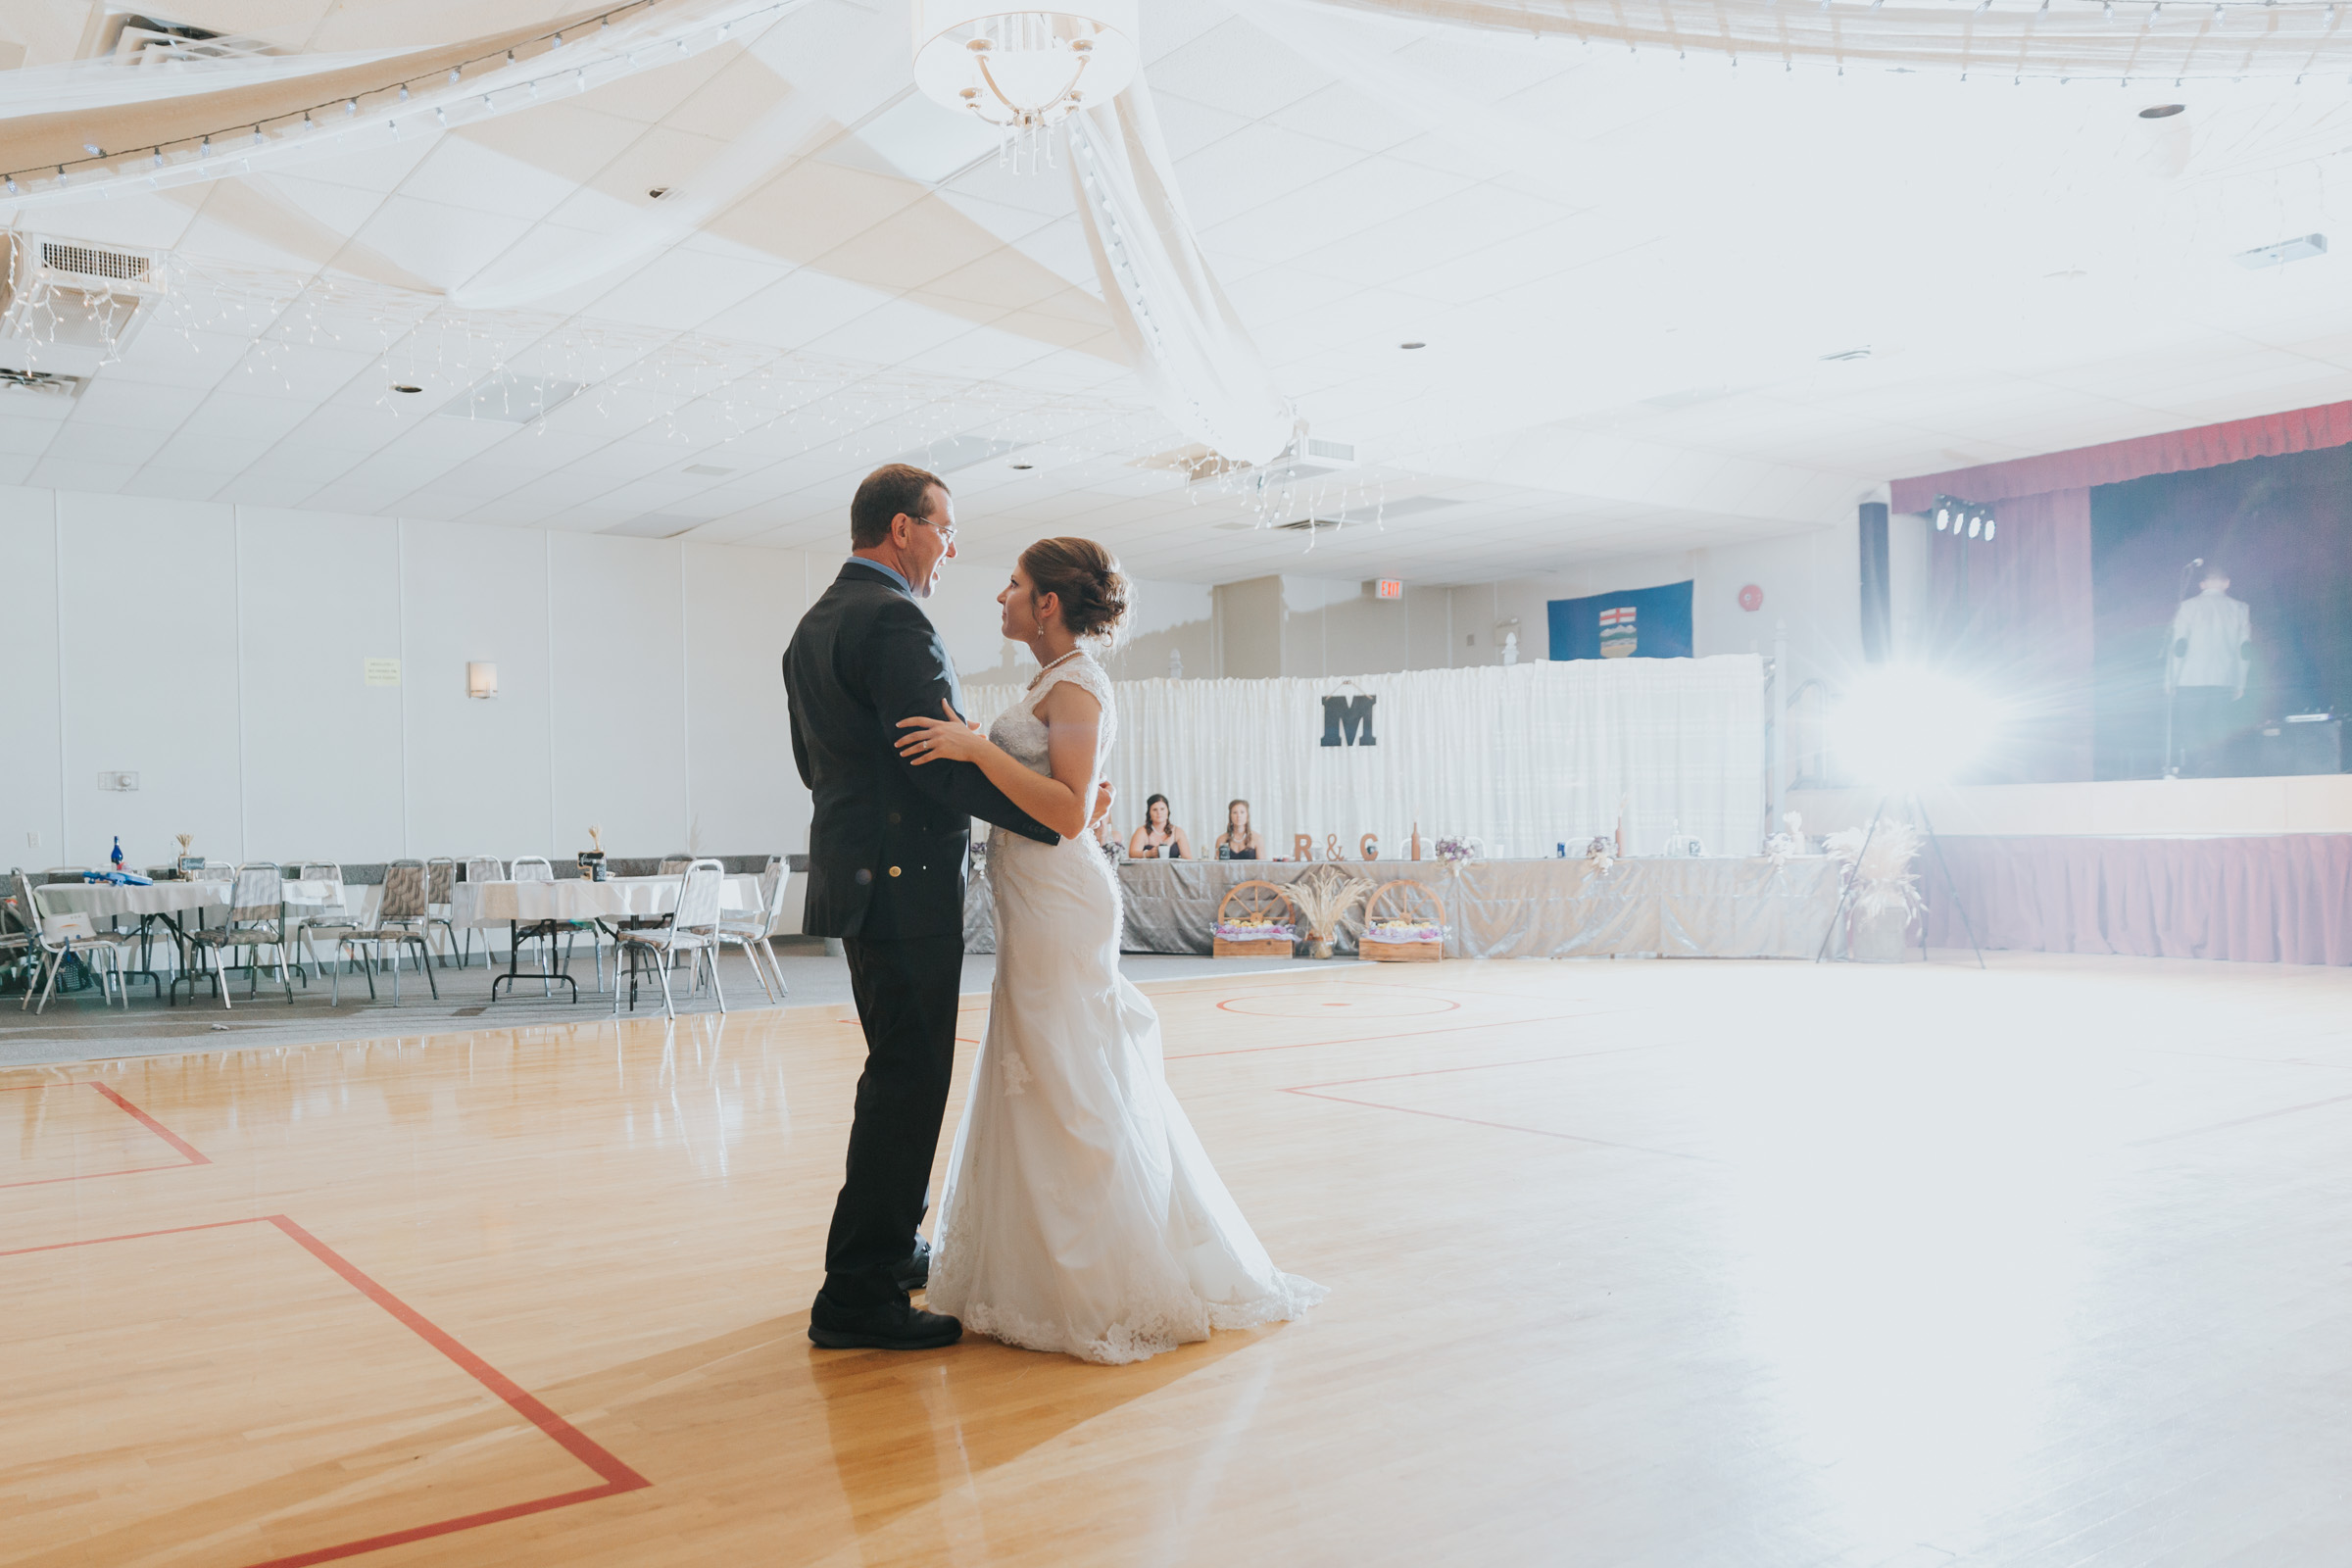 0129_wedding_mcgowan_August 27, 2016.jpg